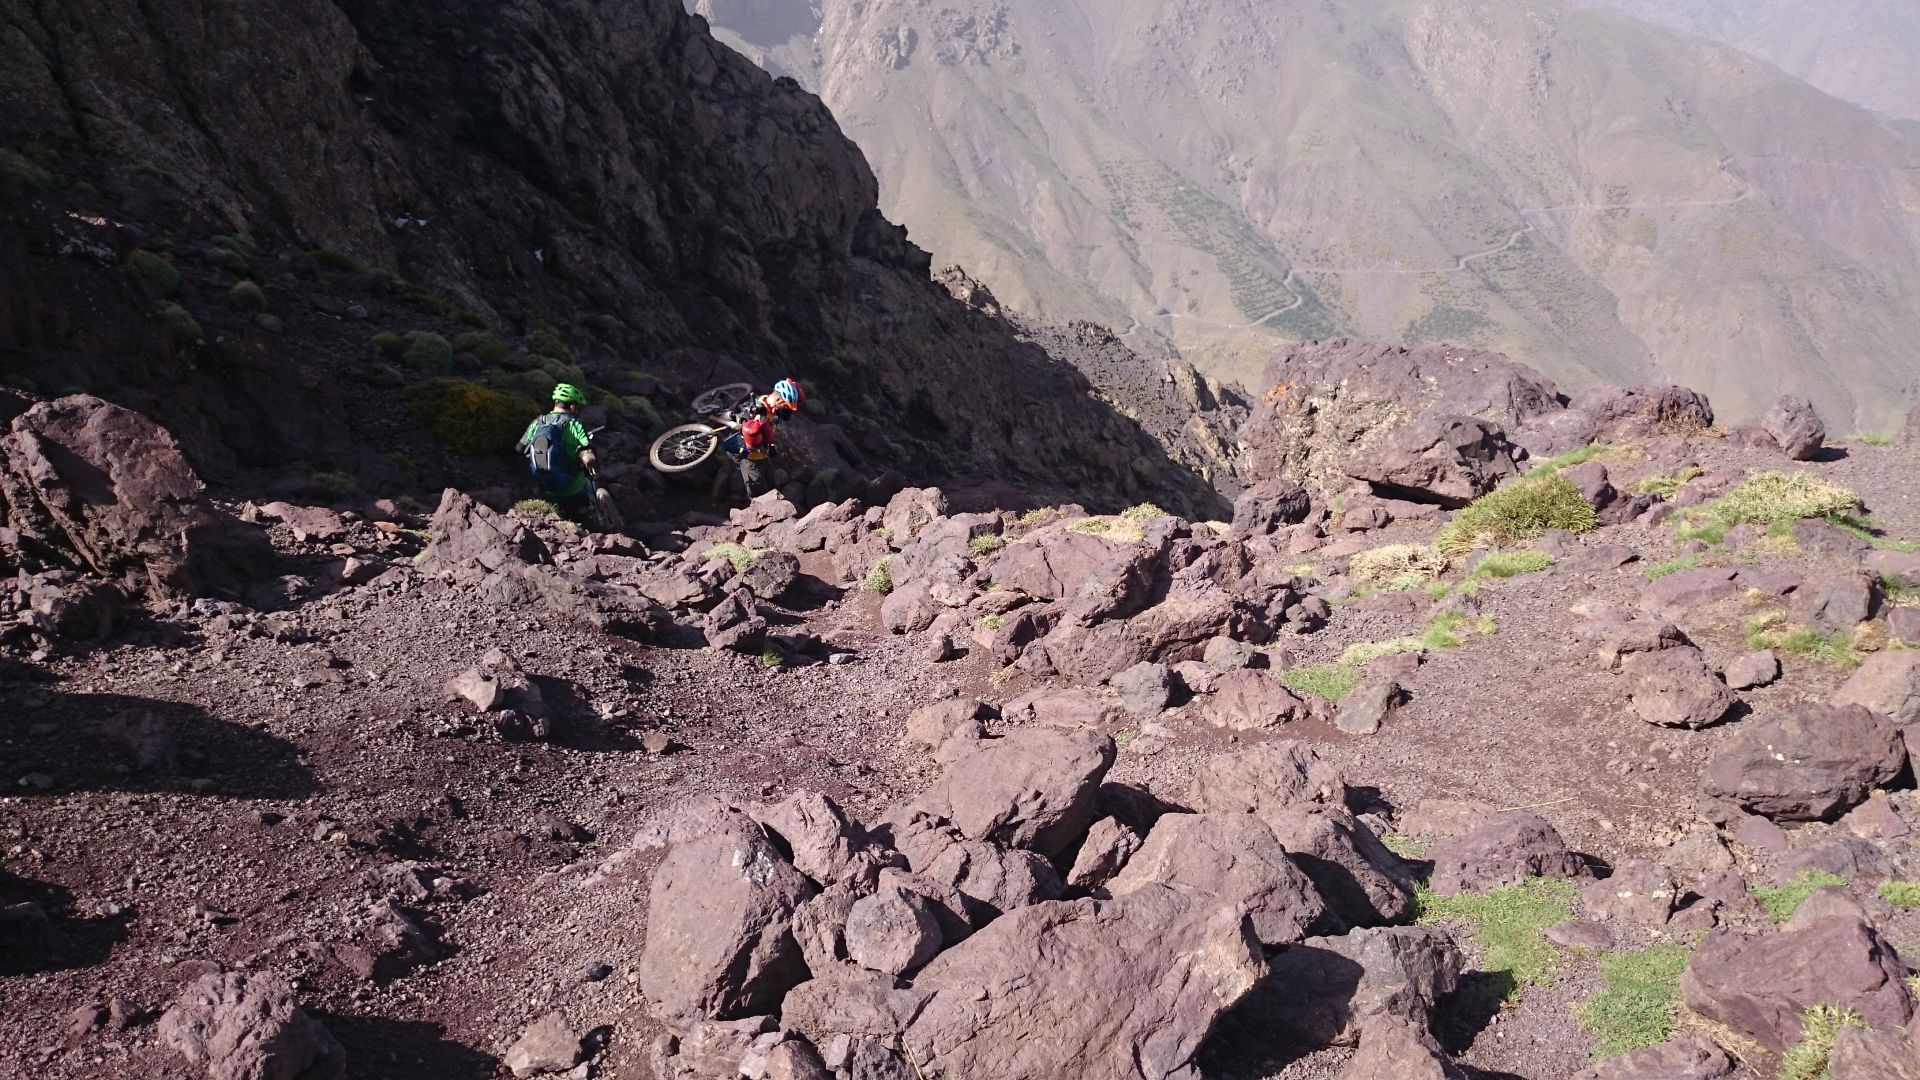 Day 8 - Into the Abyss ... rocks-aplenty. The rocky but fabulous descent from Tizi-n-Eddi to the village of Tizi-n-Tacheddirt. © Shaun Grey